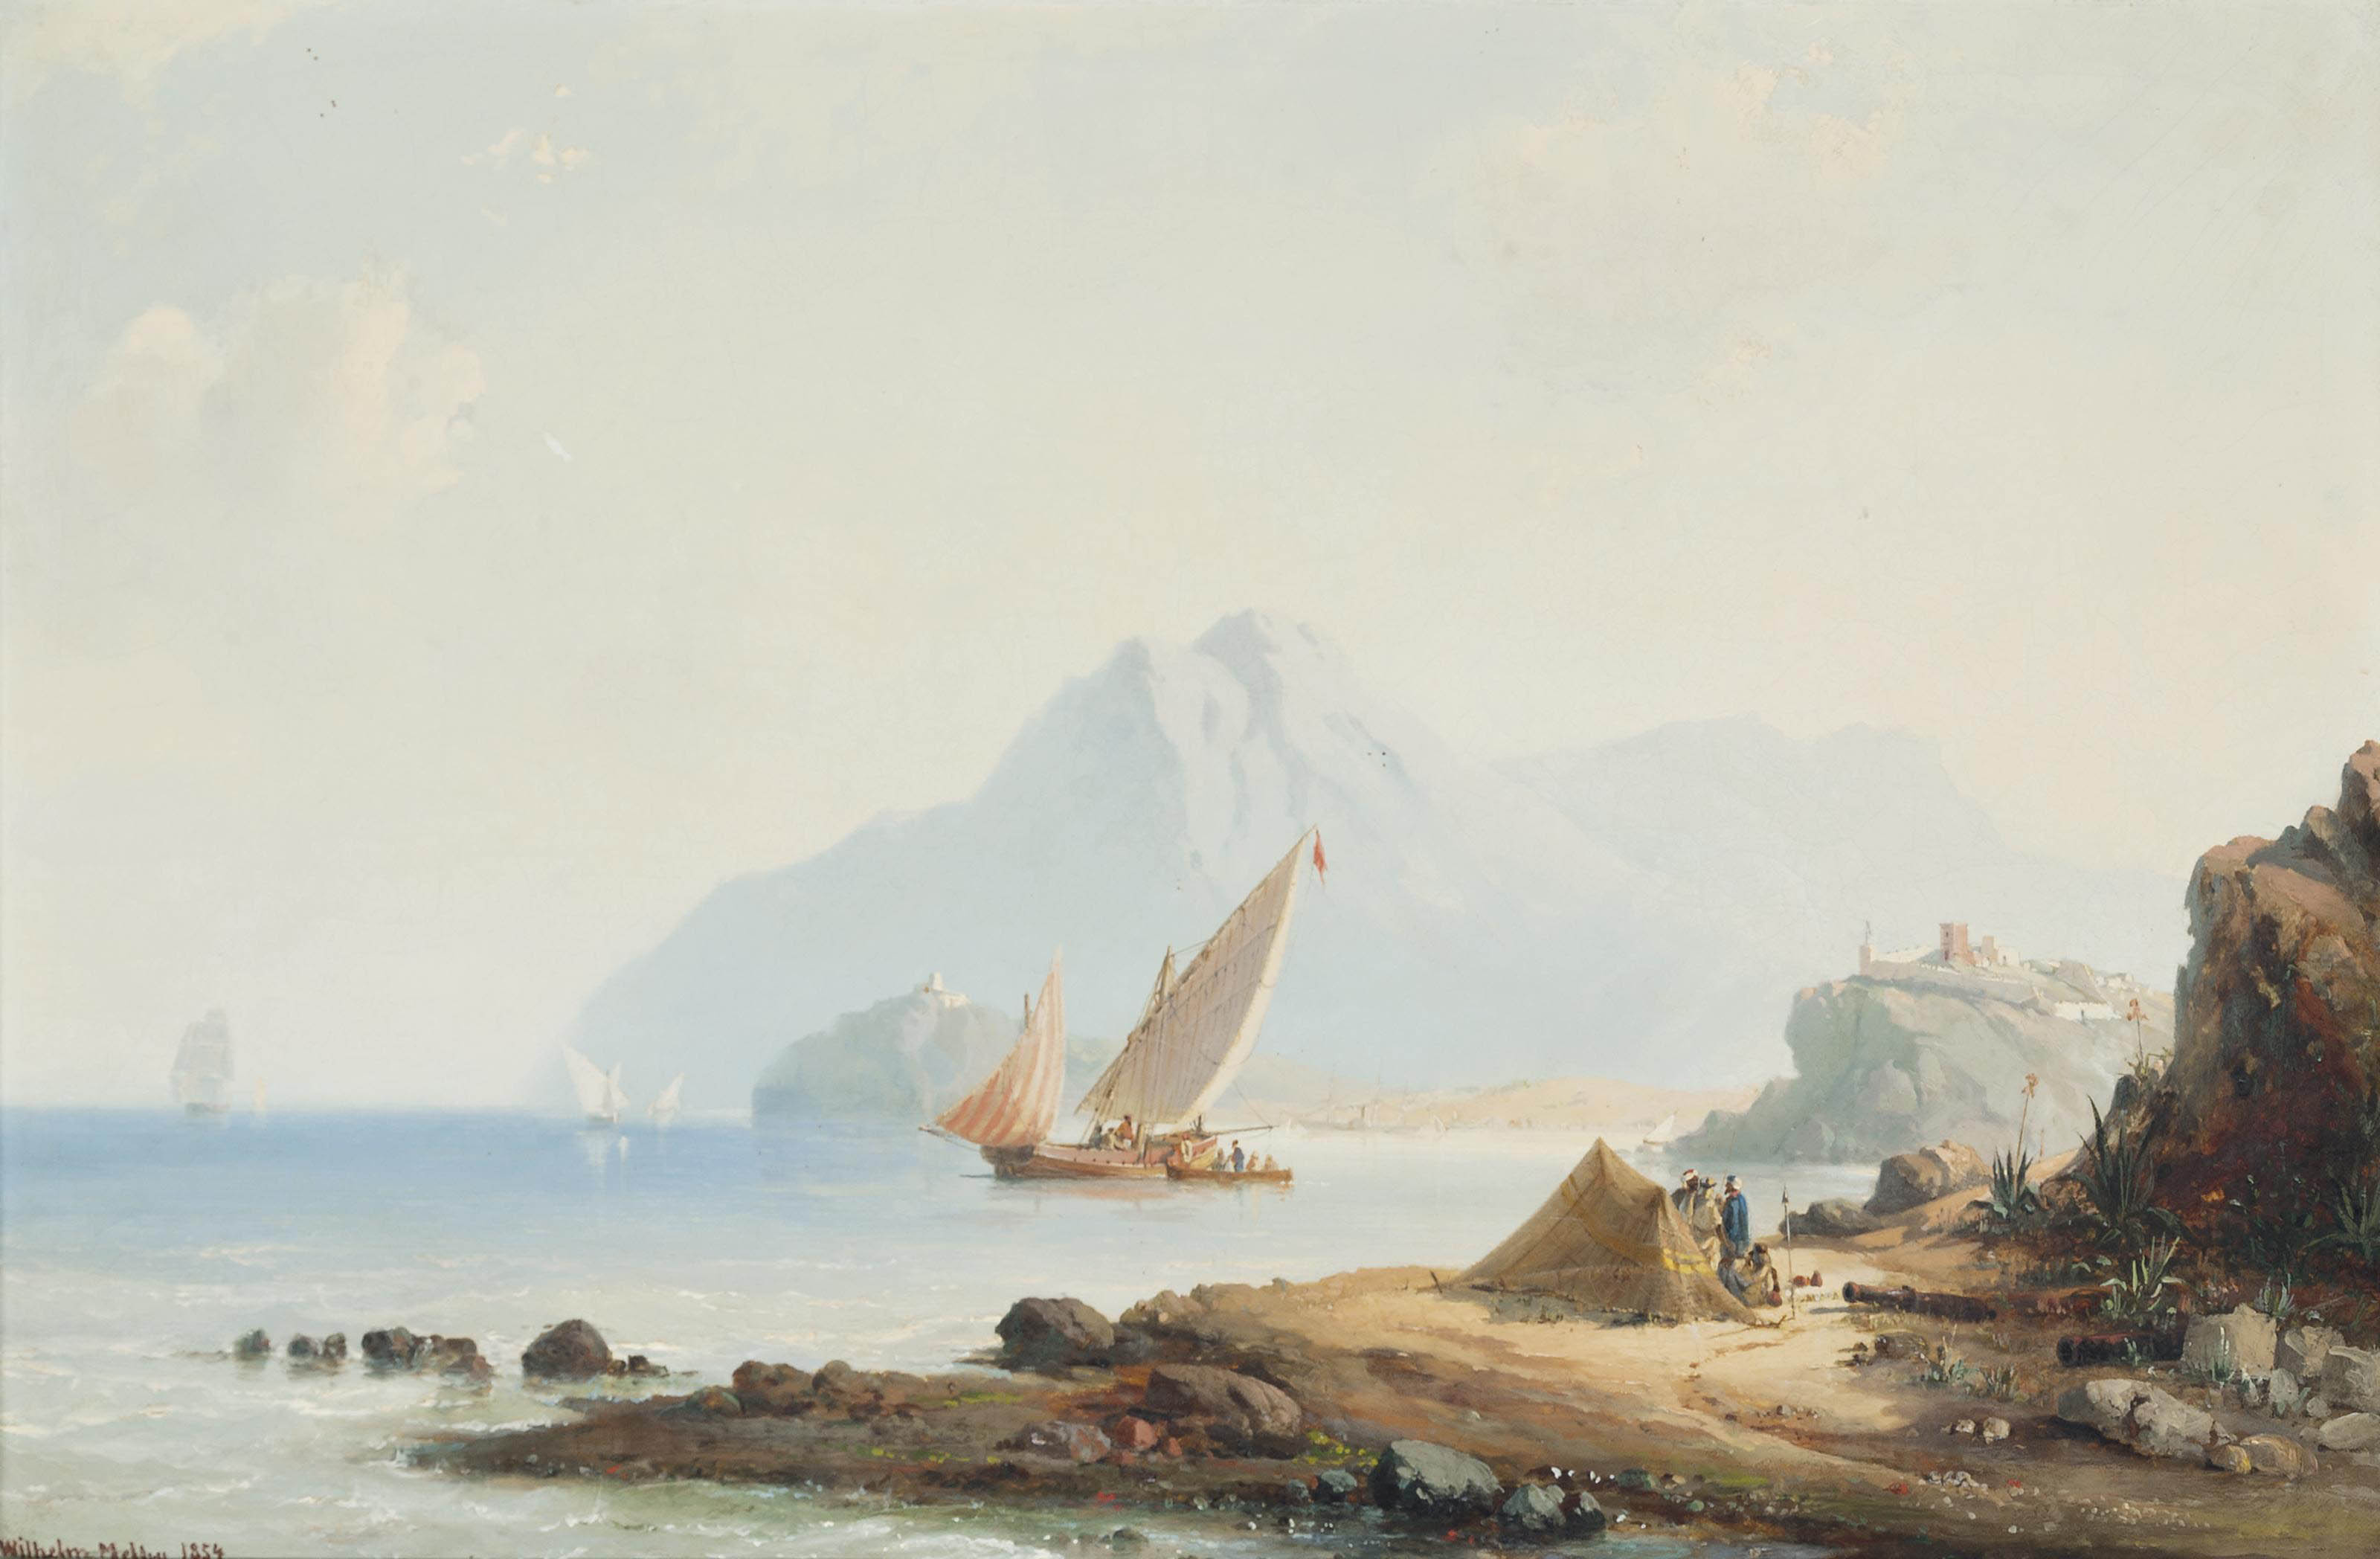 Xebecs and other coastal craft in the Mediterranean off Tangiers, Morocco